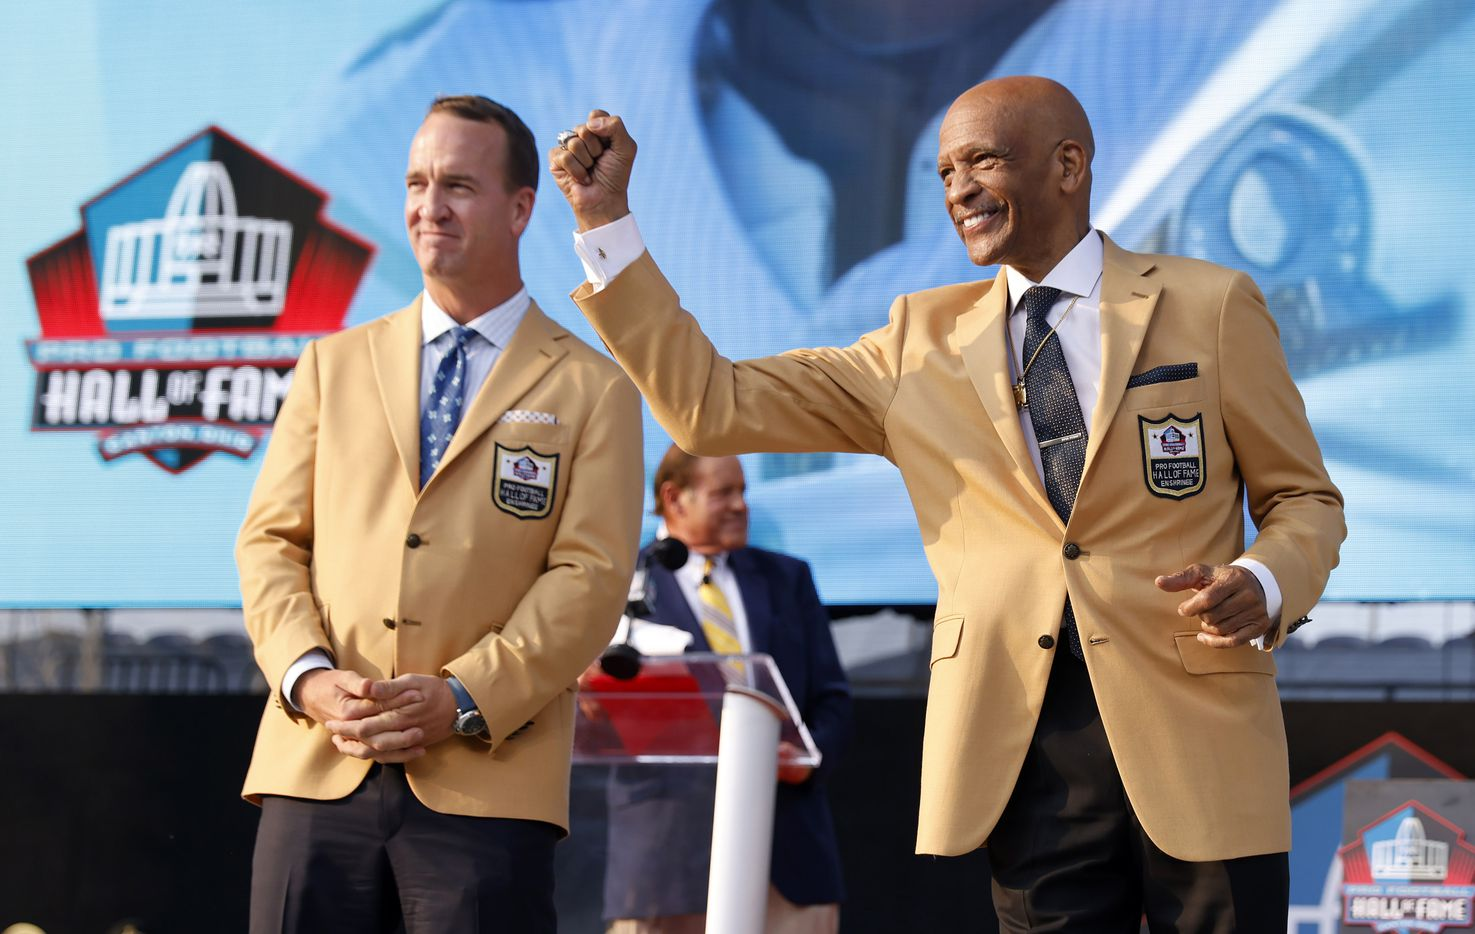 Pro Football Hall of Fame inductee Drew Pearson of the Dallas Cowboys pumps his fist to his friends, family and fans as the Class of 2021 is introduced during the enshrinement ceremony at Tom Benson Hall of Fame Stadium in Canton, Ohio, Sunday, August 8, 2021. Peyton Manning of the Indianapolis Colts is pictured on the right. (Tom Fox/The Dallas Morning News)